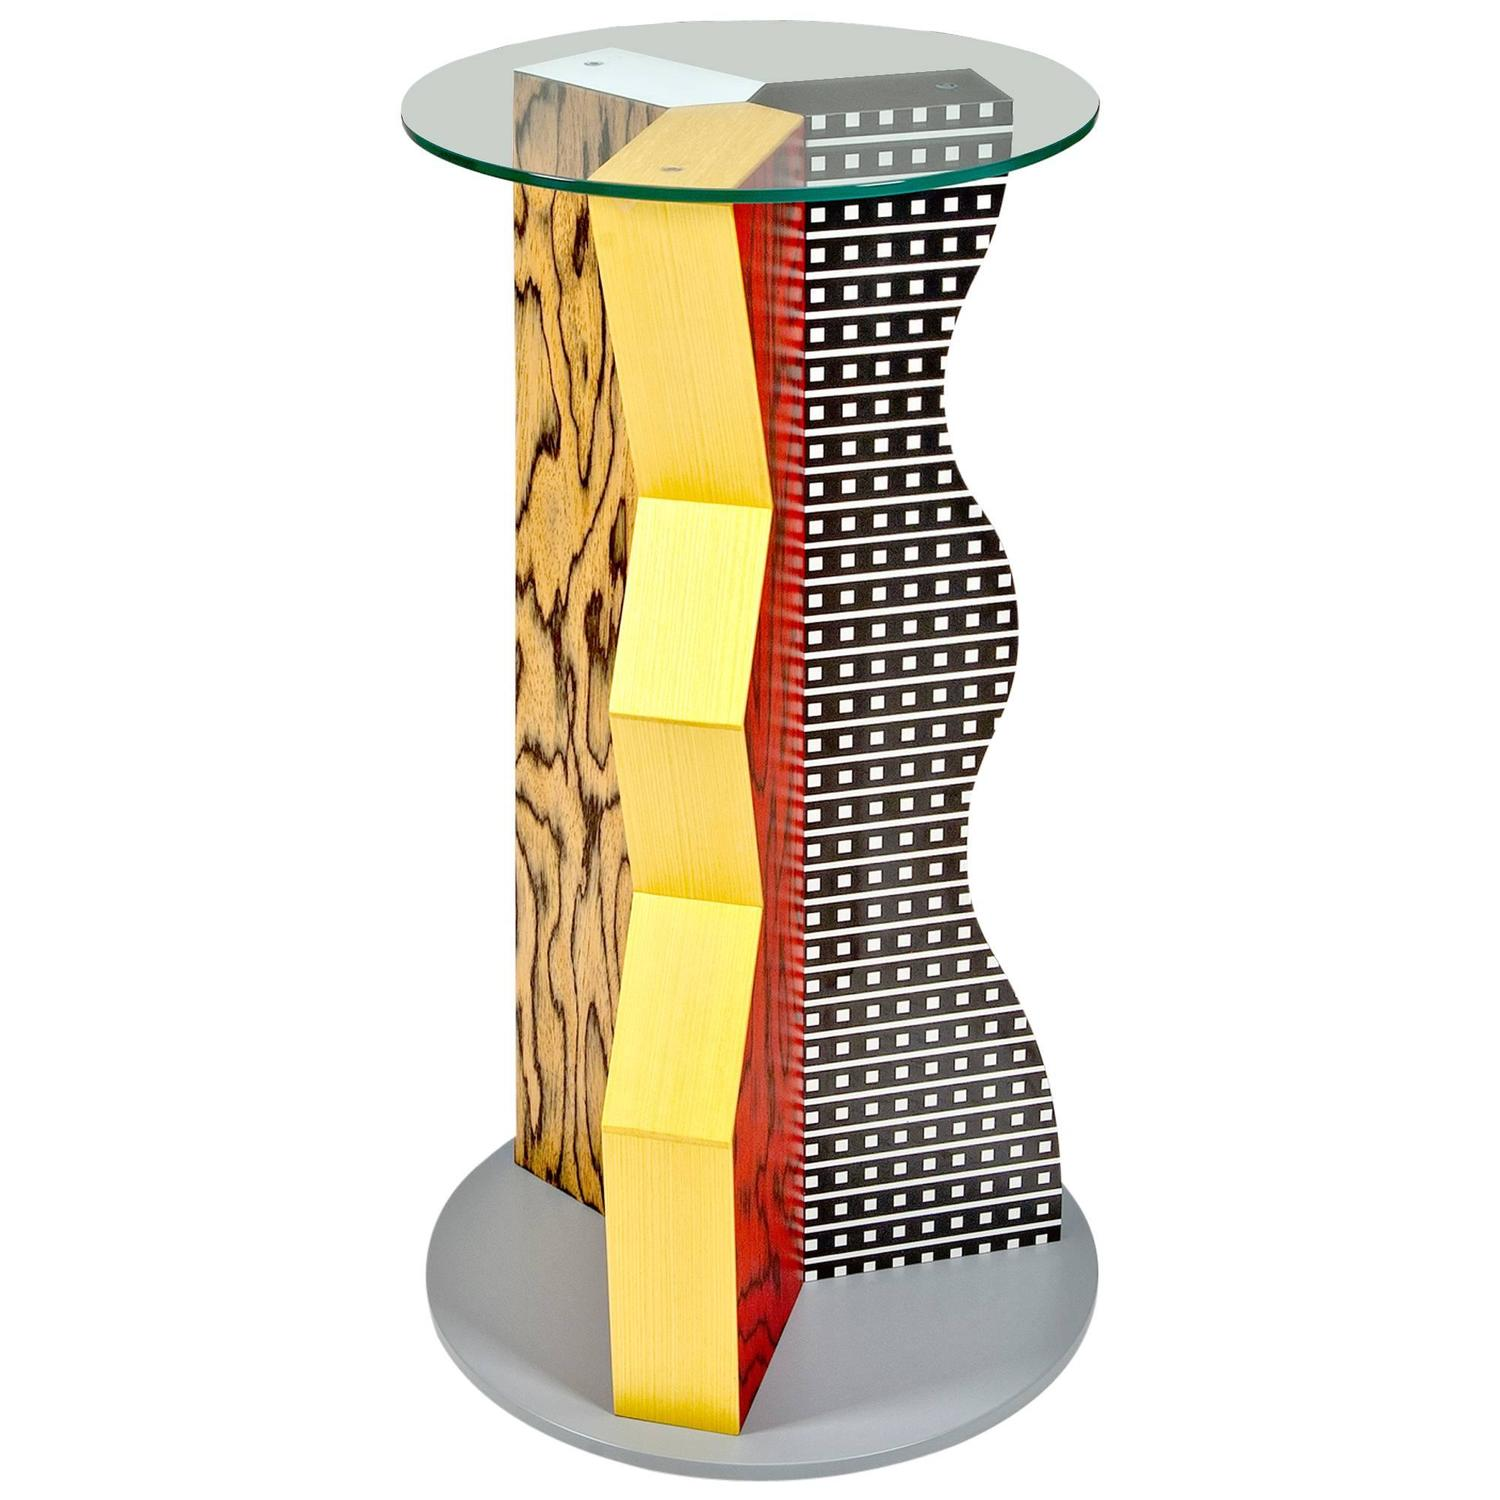 Ivory pedestal by ettore sottsass for memphis for sale at for Memphis sottsass